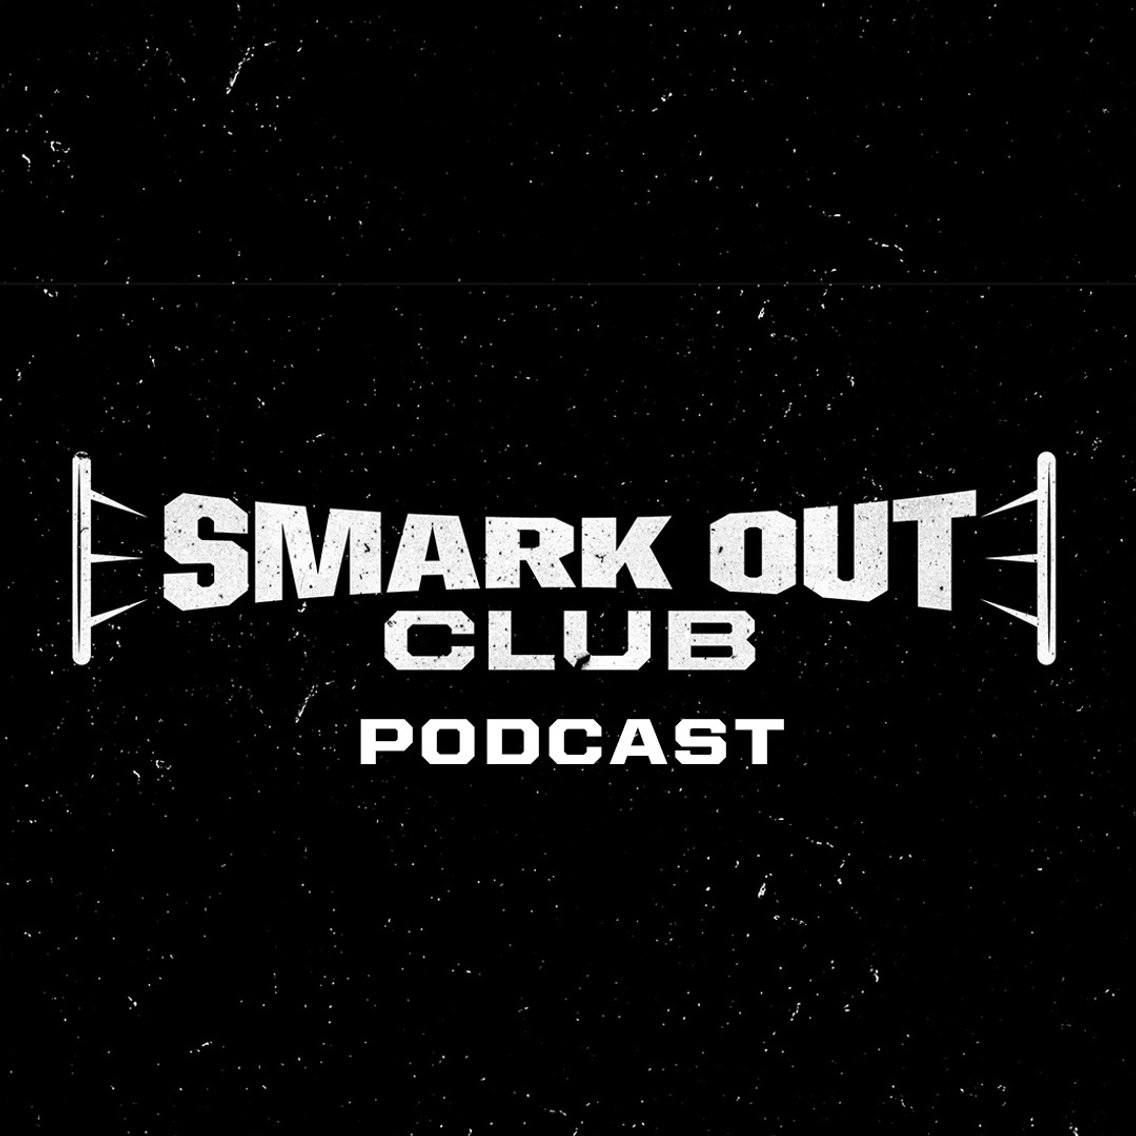 Smark Out Club Podcast - Cover Image